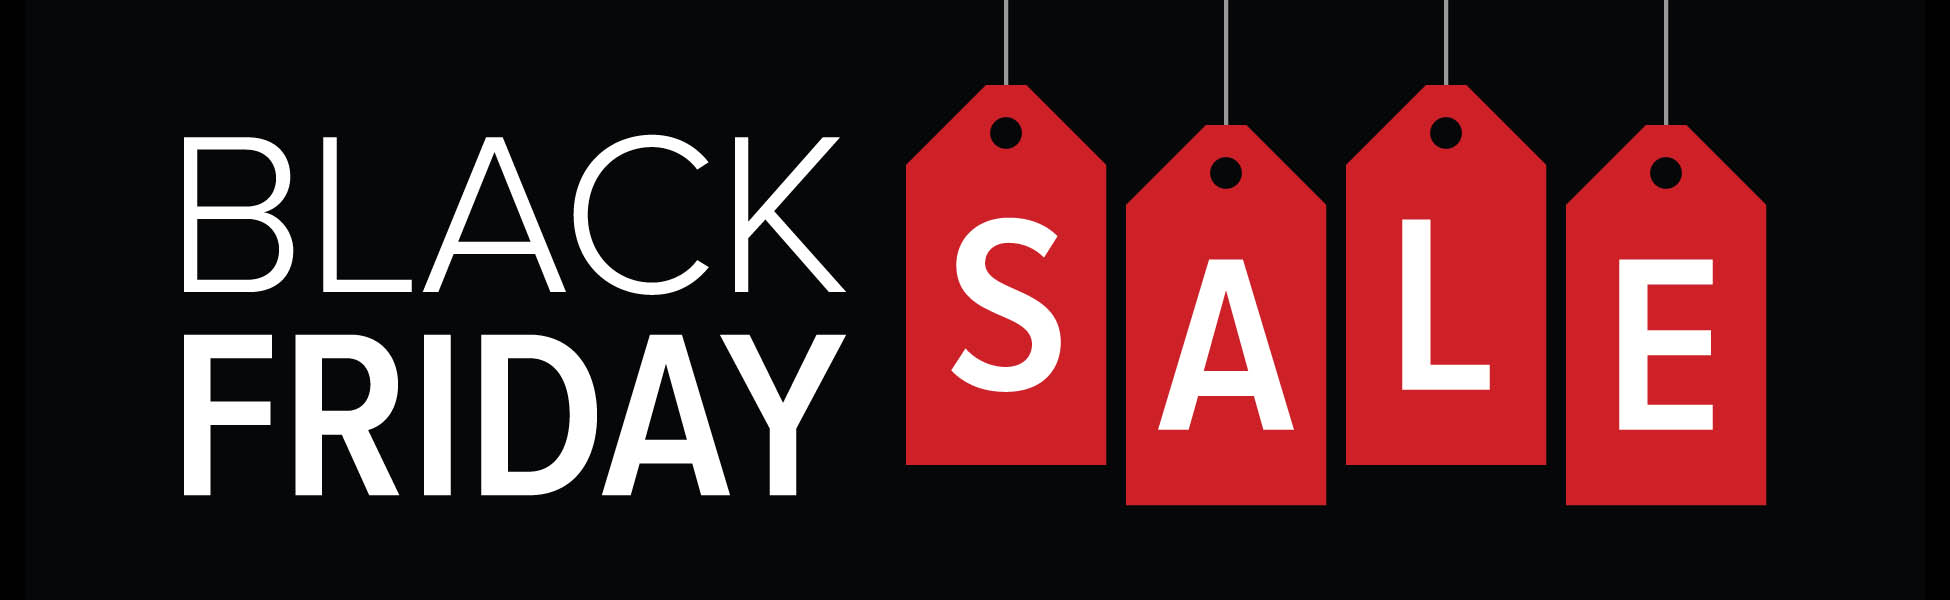 Black Friday Sale fireplaces